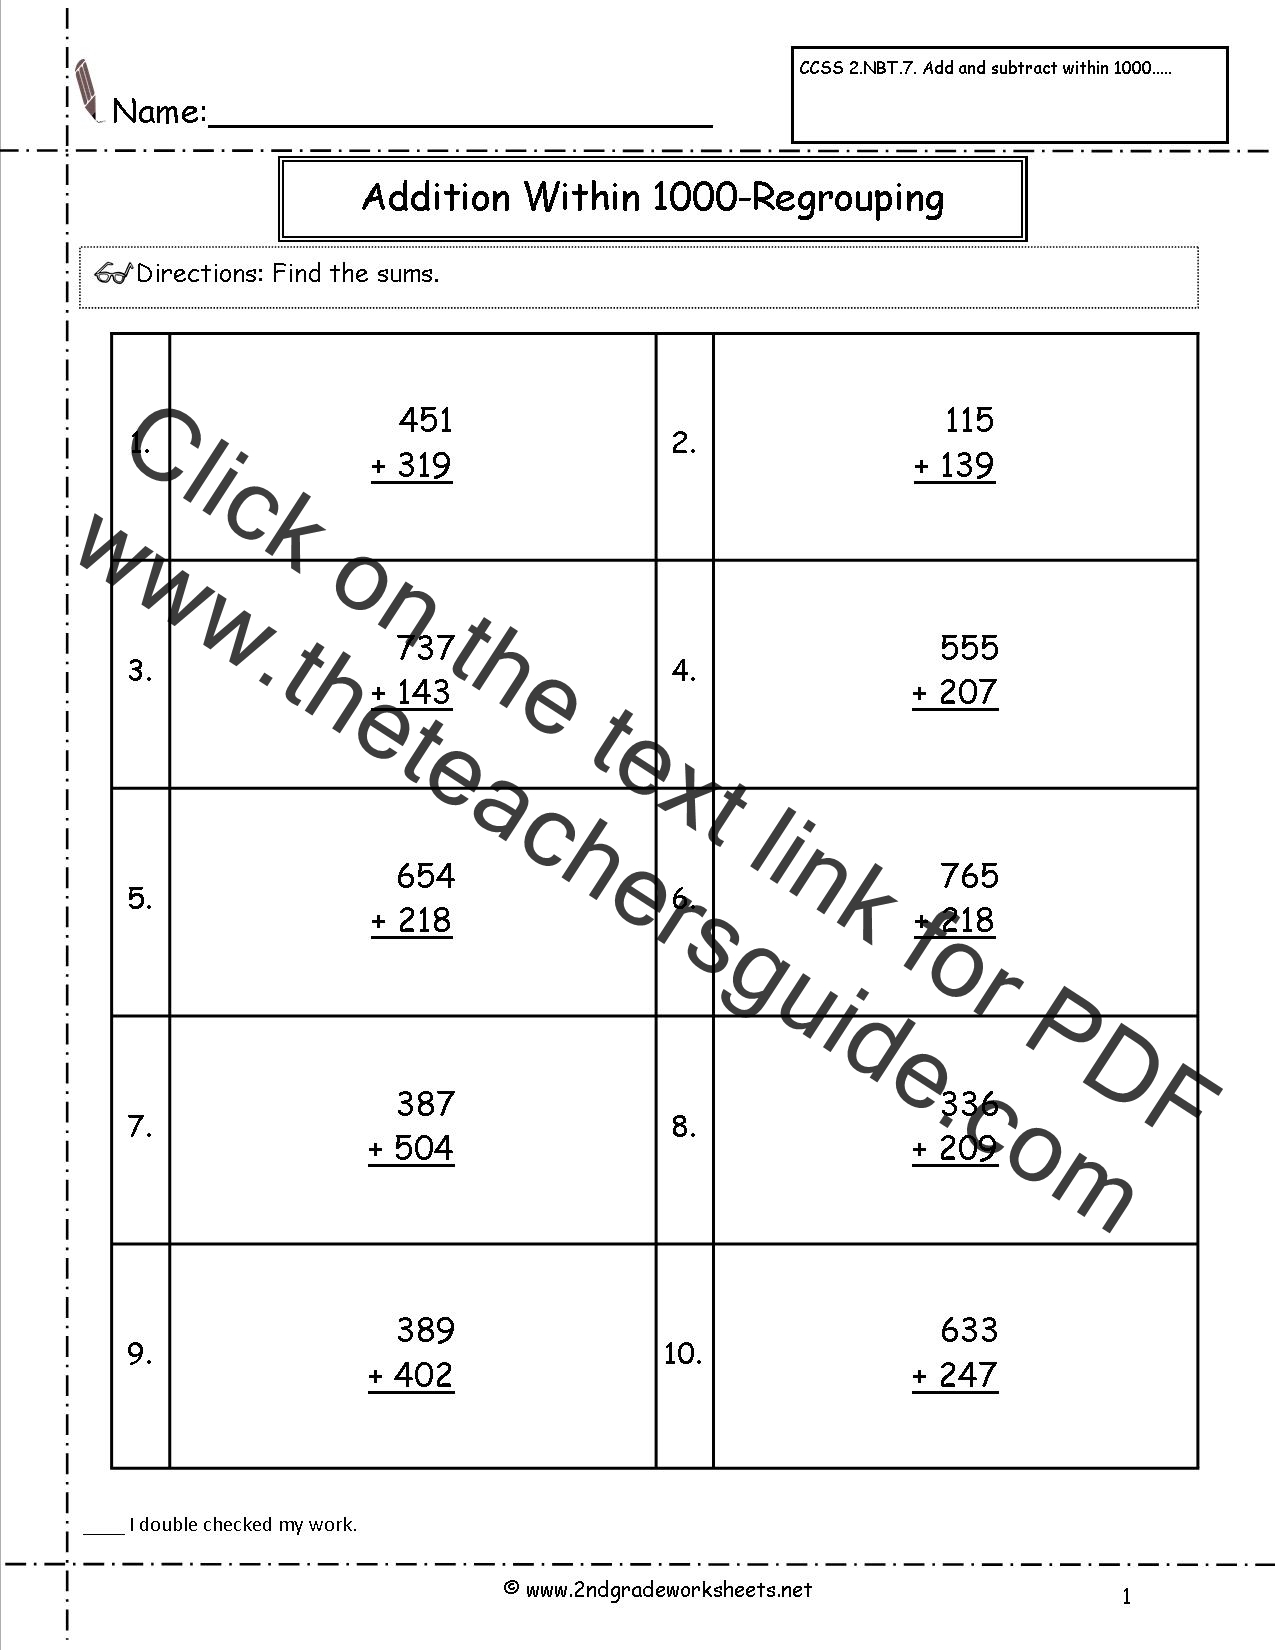 Worksheets 5.nbt.5 Worksheets ccss 2 nbt 7 worksheets addition and subtraction within 1000 3 4 5